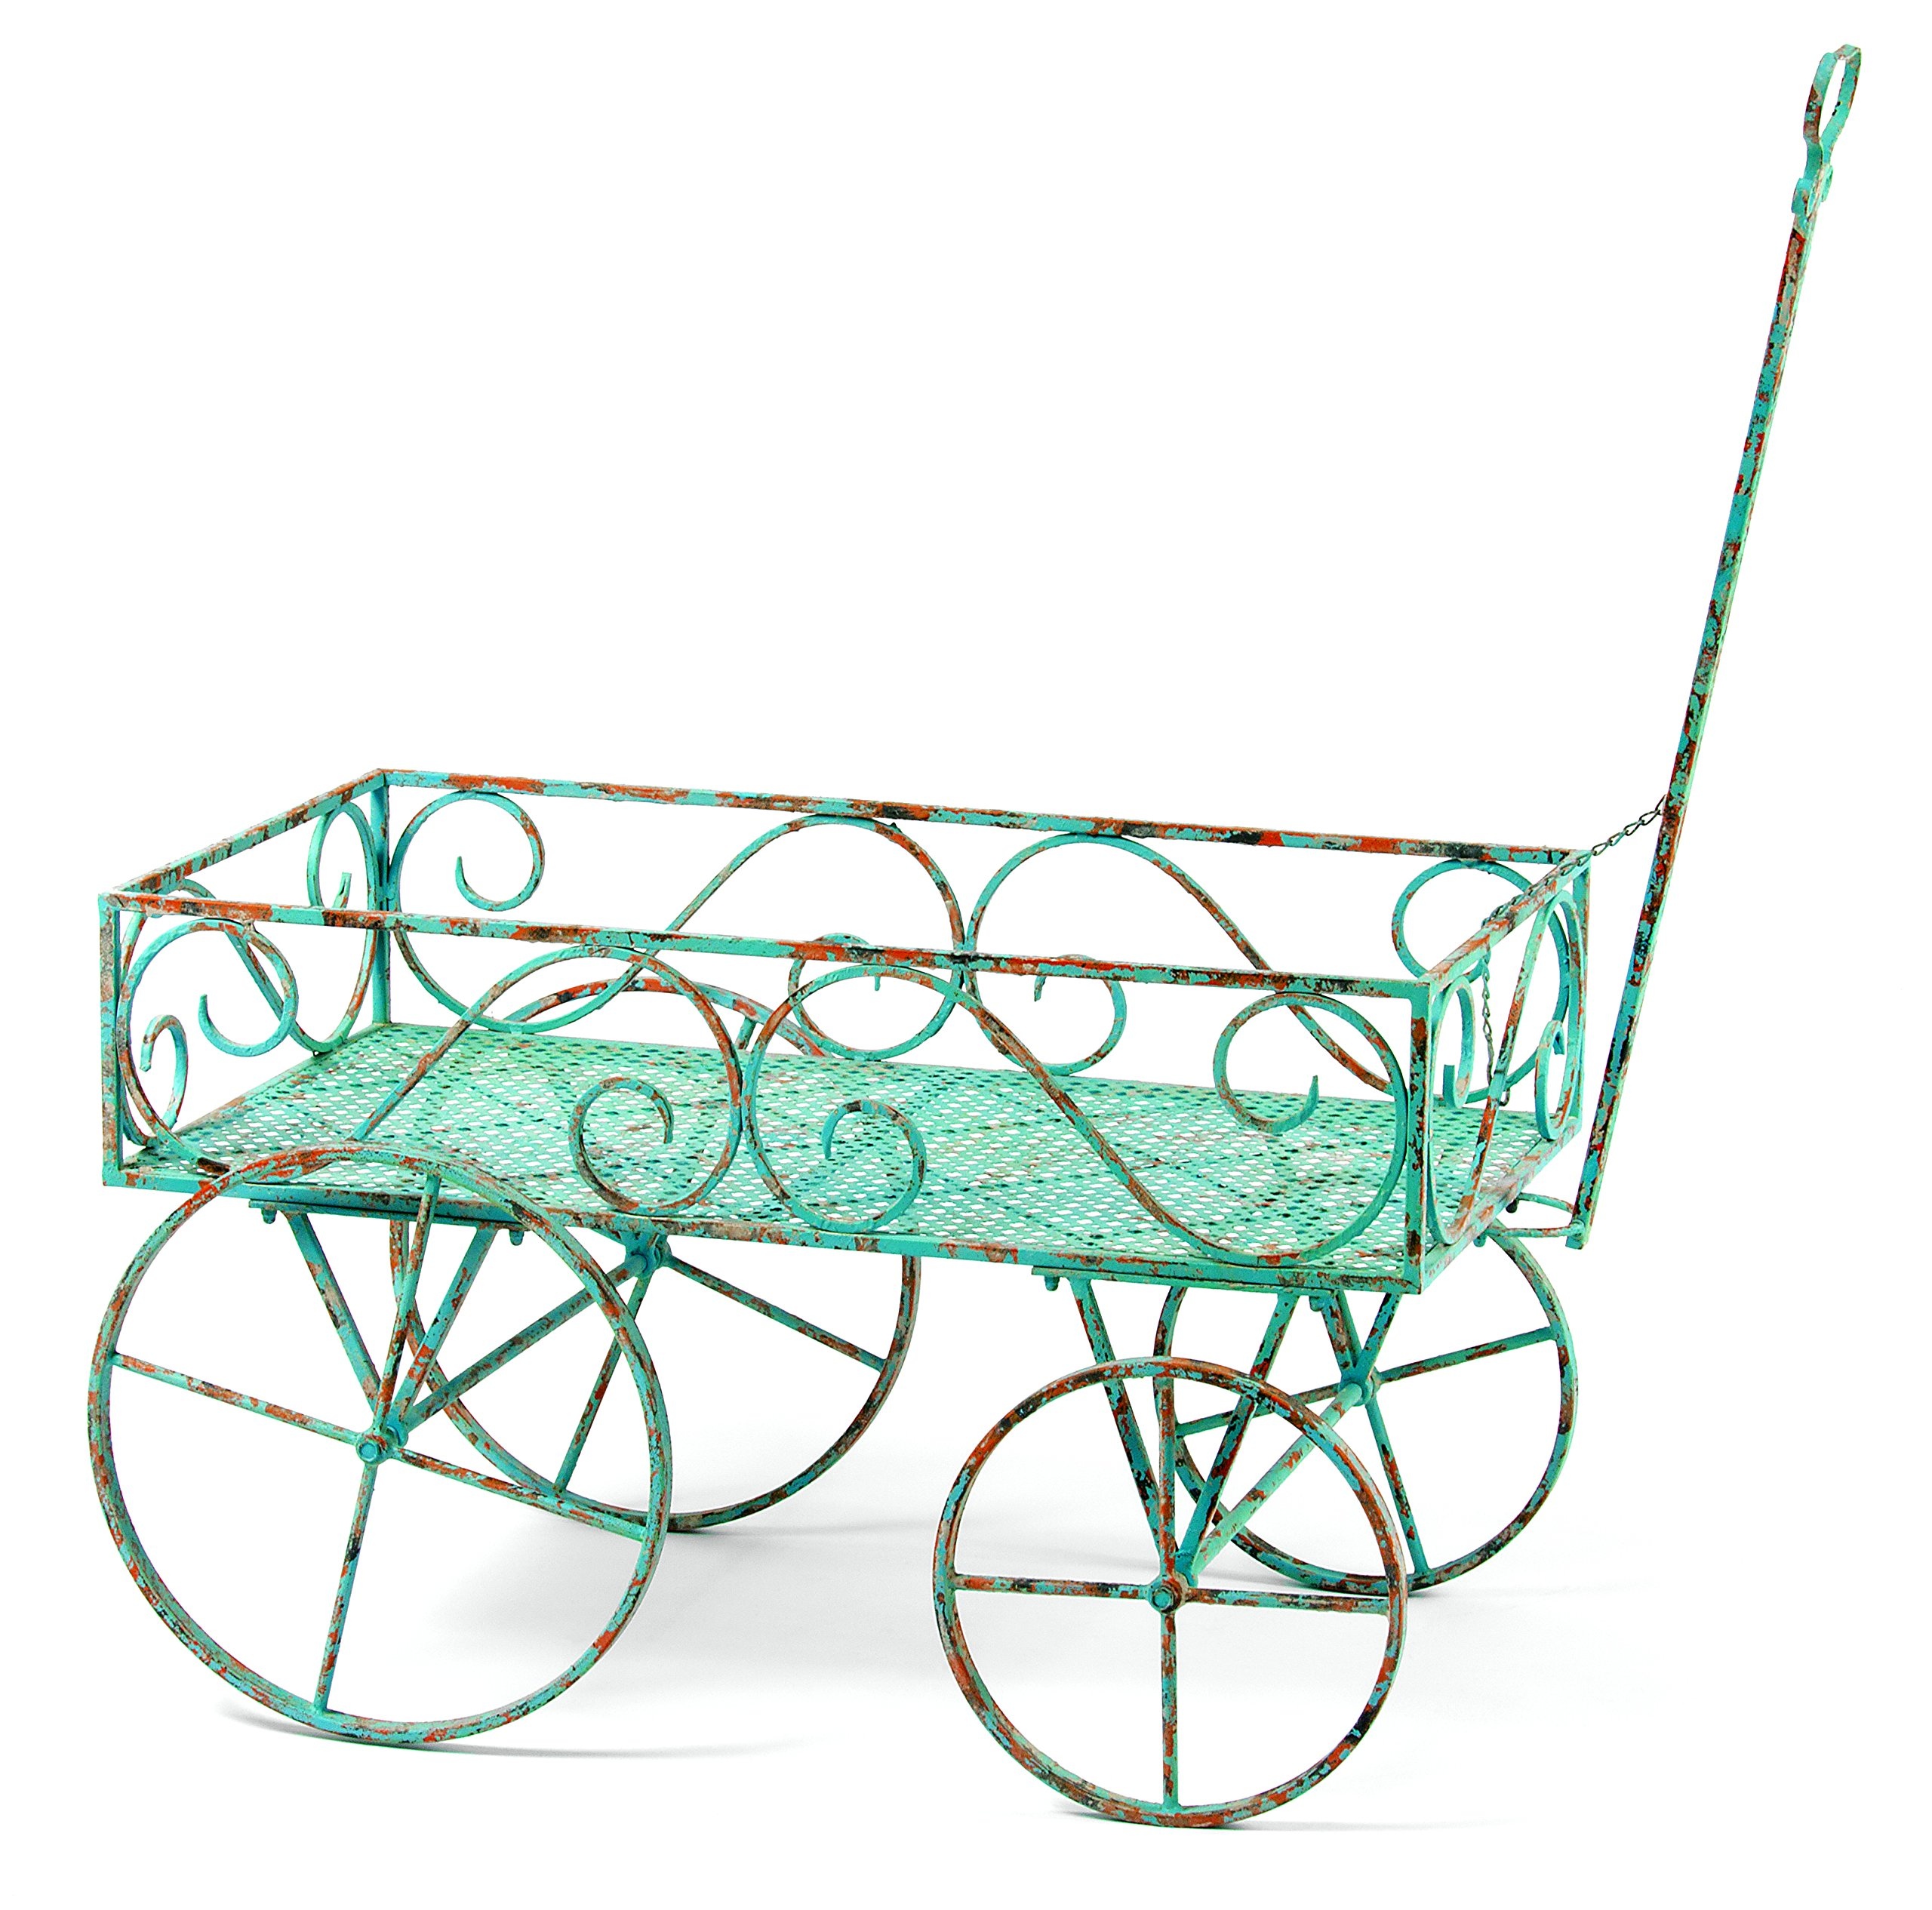 Deer Park Ironworks TC103-BLU Garden Wagon, Large, Light Blue by Deer Park Ironworks